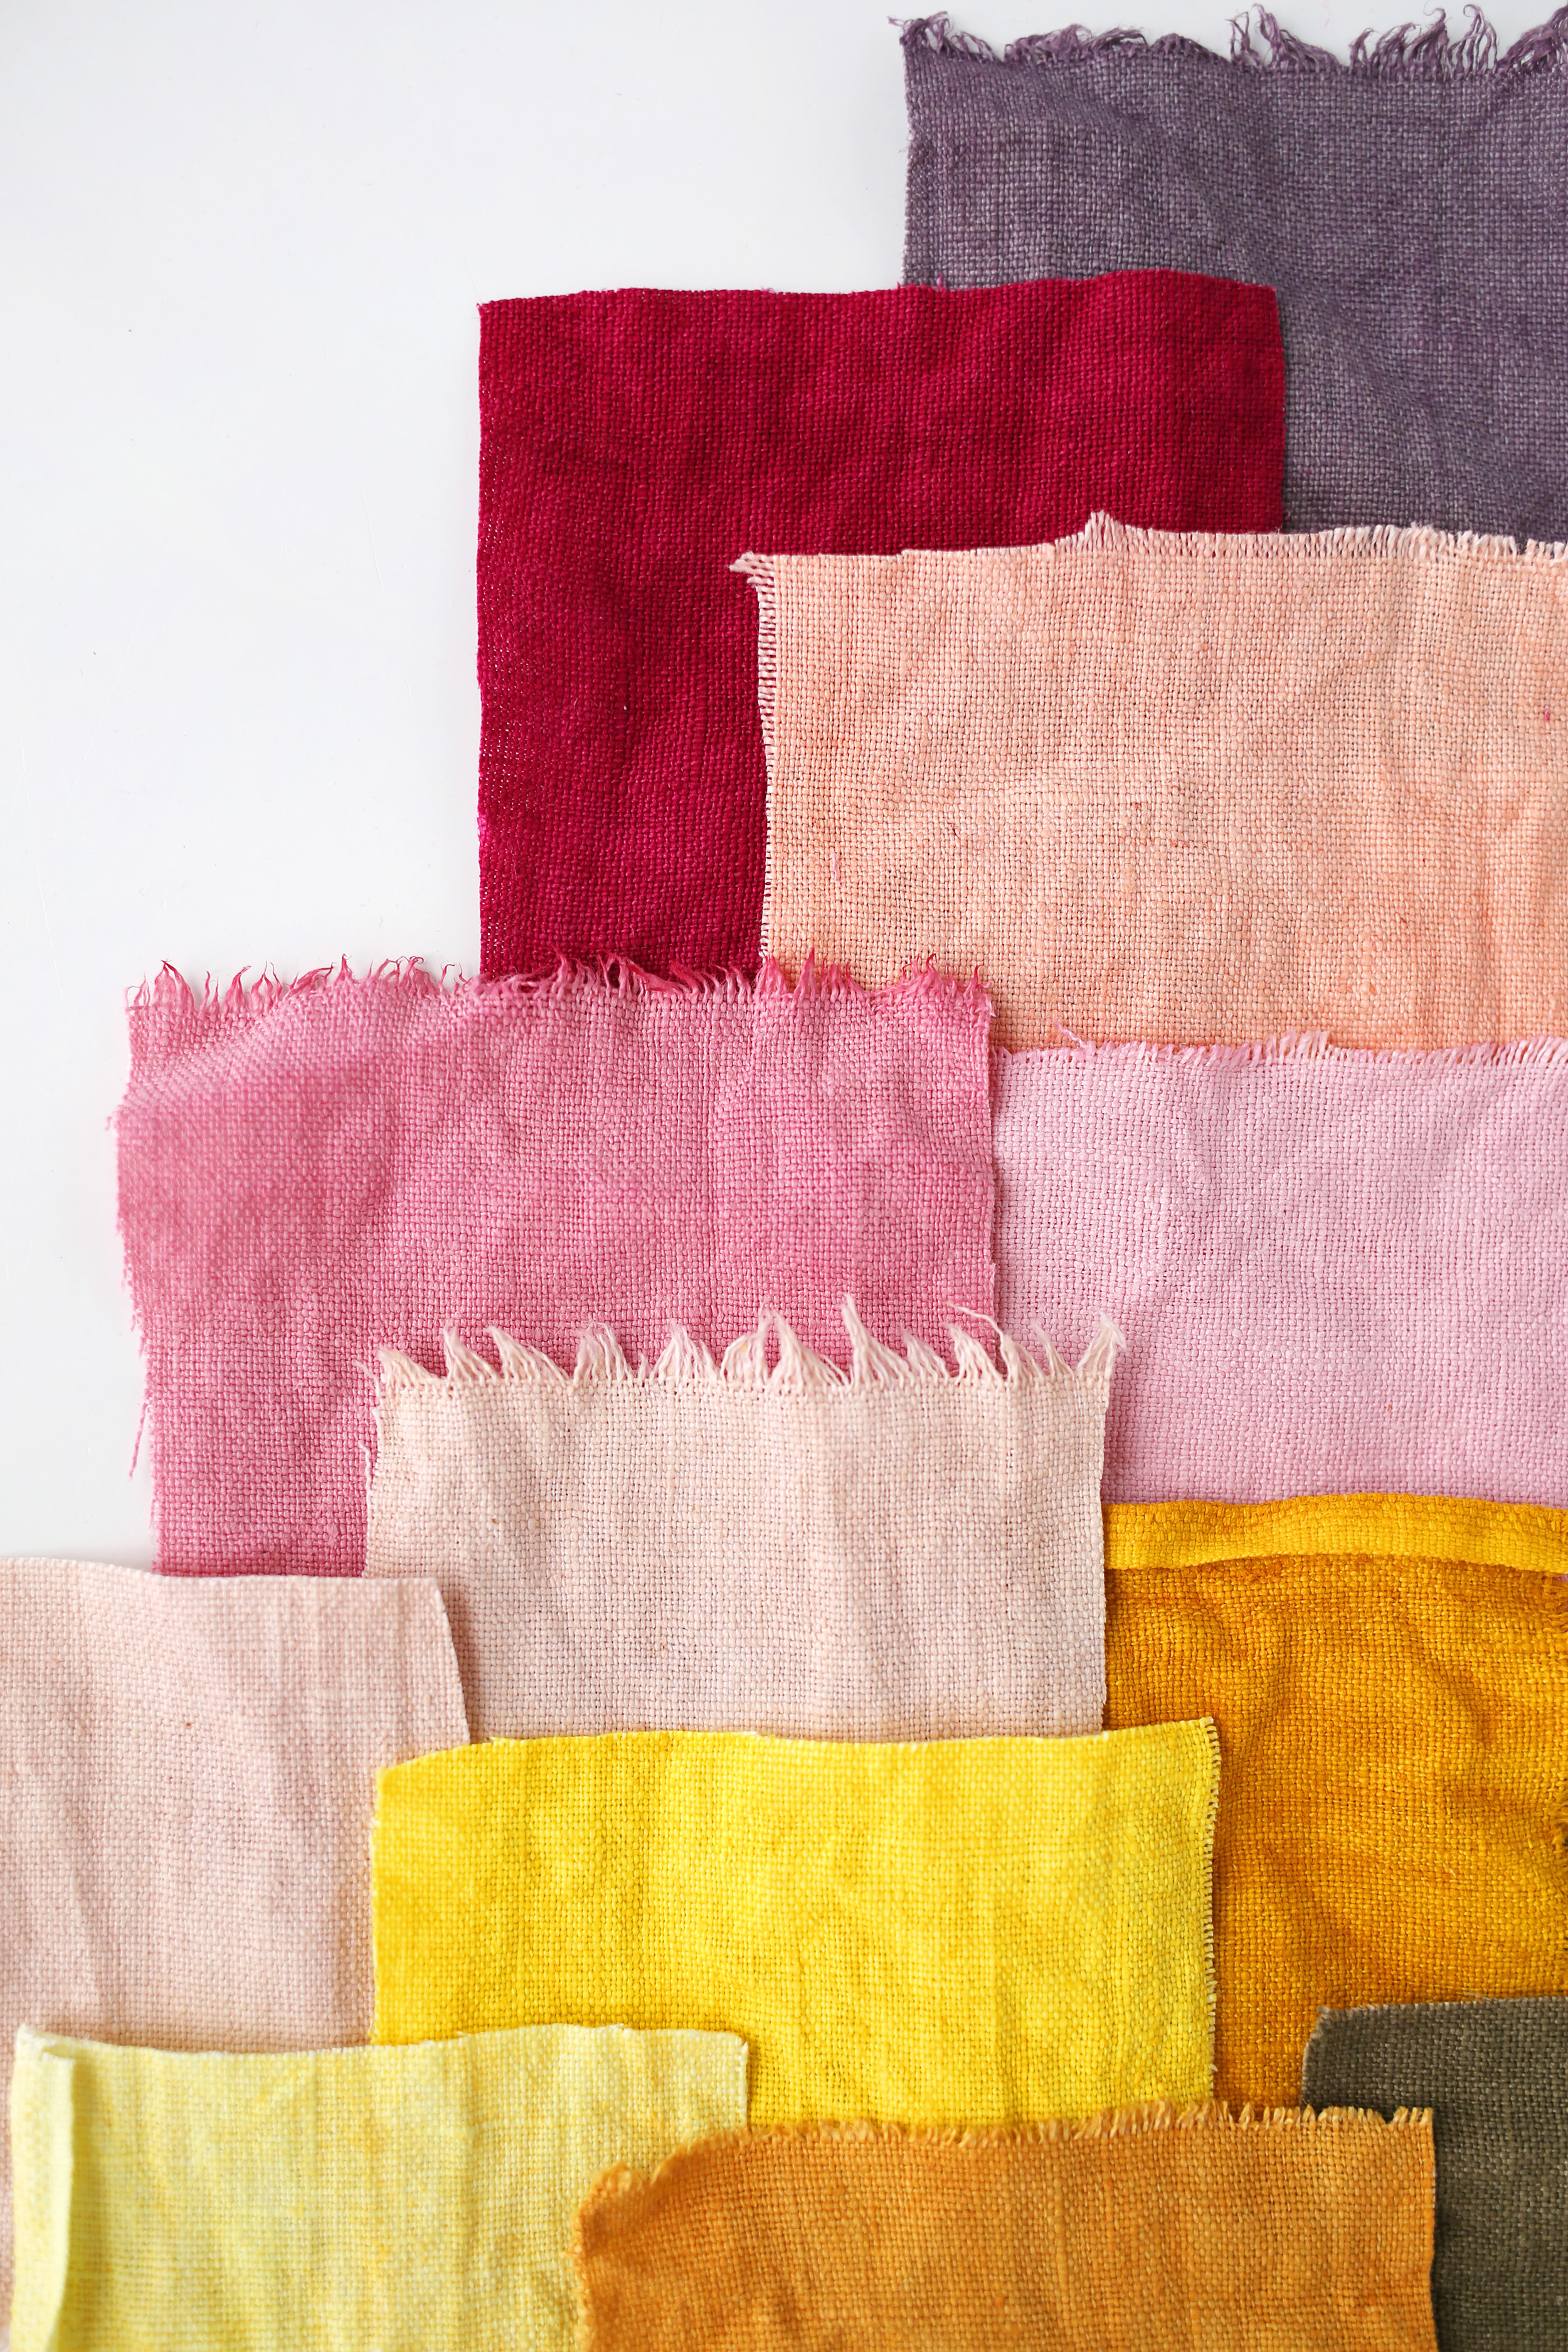 A wide range of colors from natural dyes